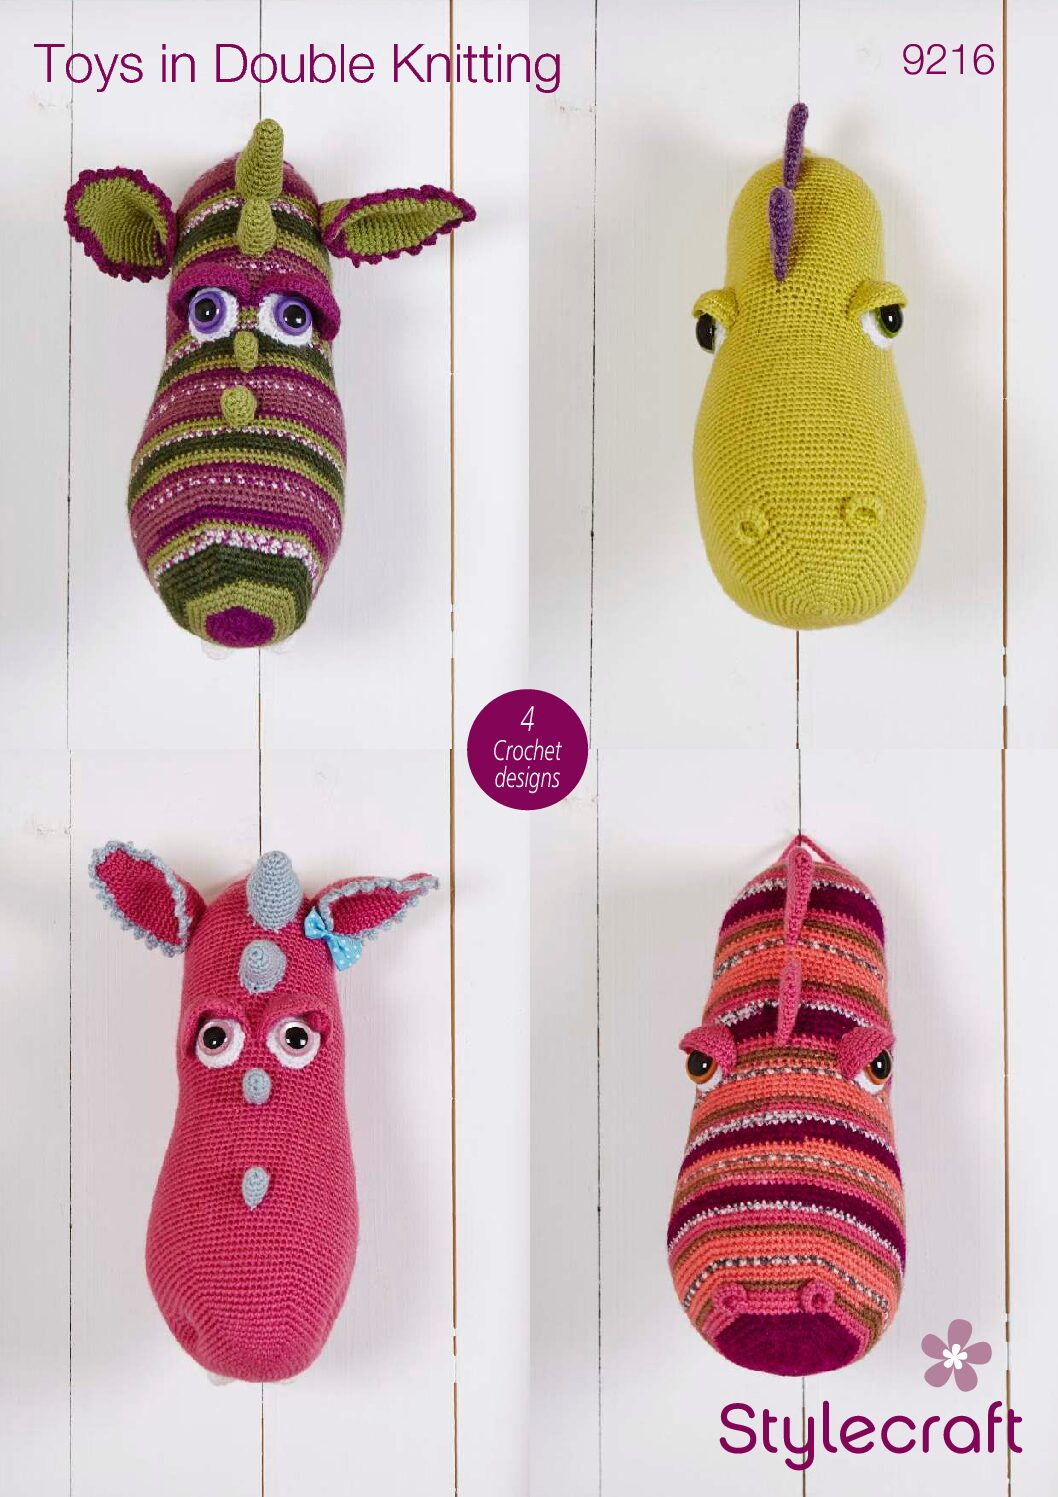 Stylecraft Pattern Toys 9216 (download) product image